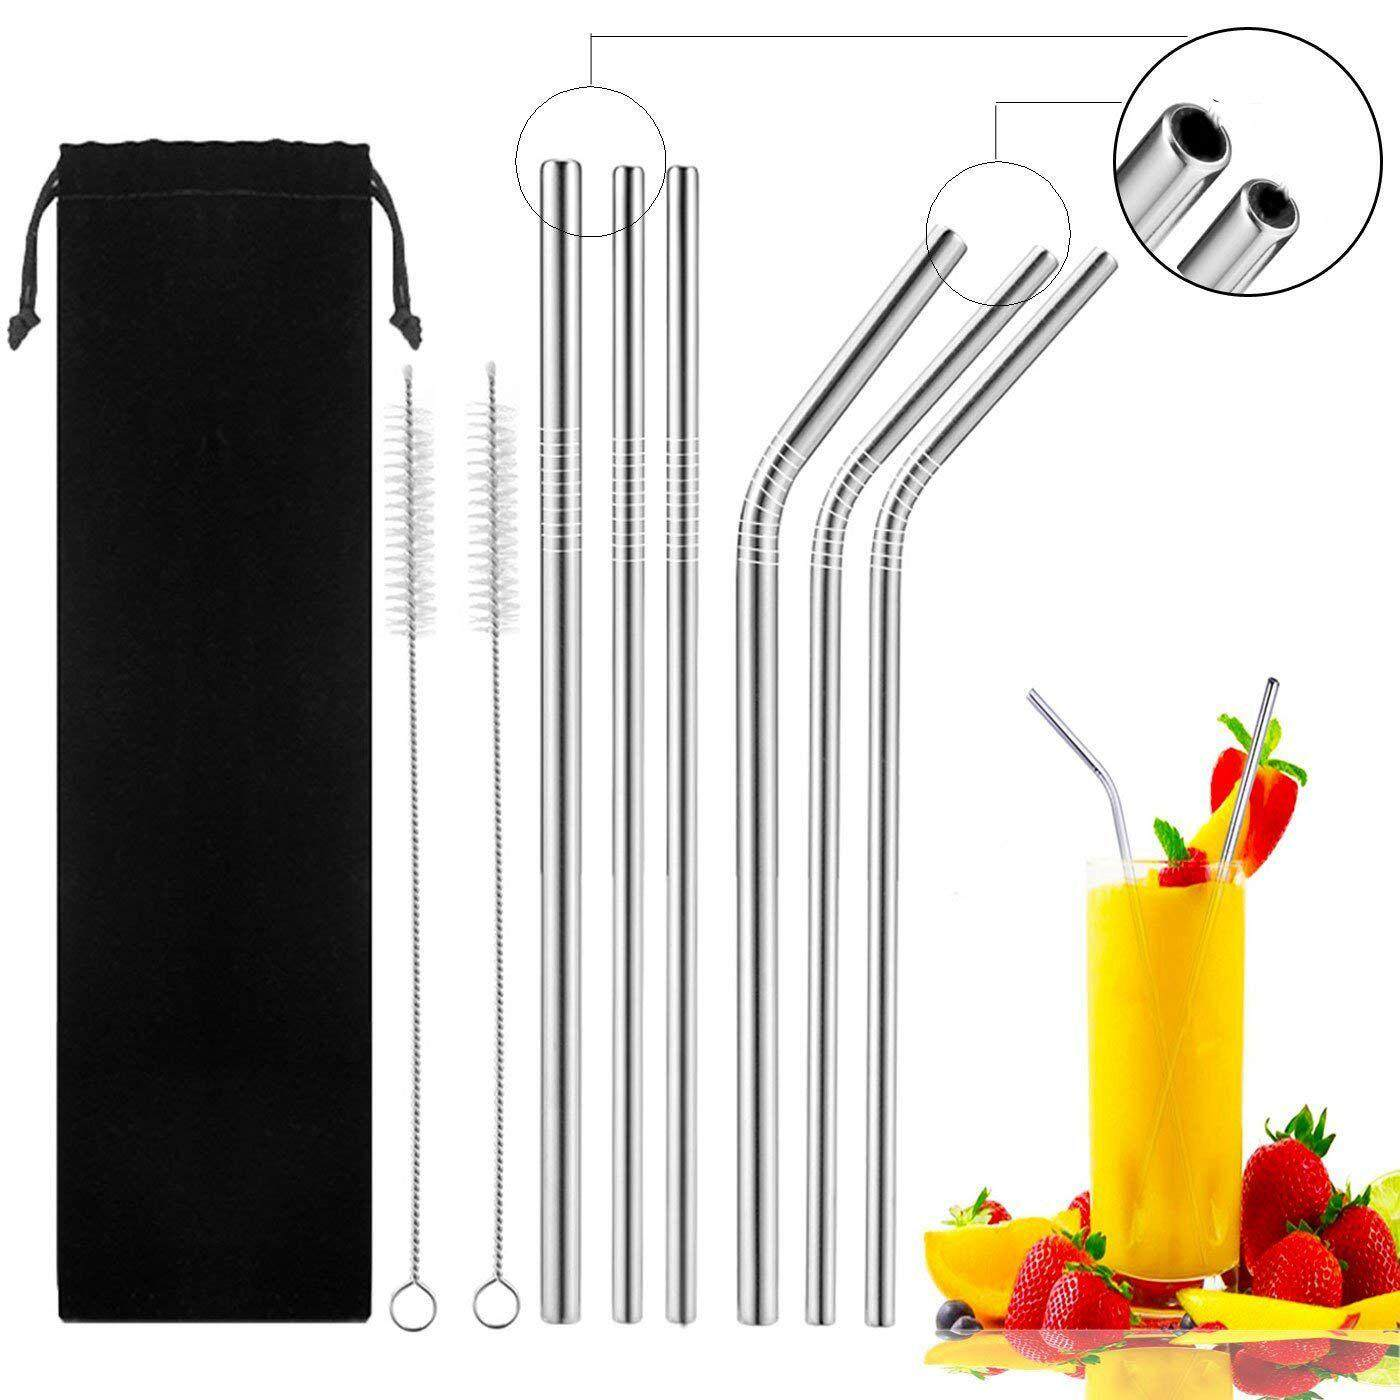 Stainless Steel Straws, 6 Pack Reusable Straws With 2 Pcs Cleaning Brushes, 8.5 Inch Reusable Drinking Straws (3 Straight + 3 Bent Smoothie Straws) By Ralleya.